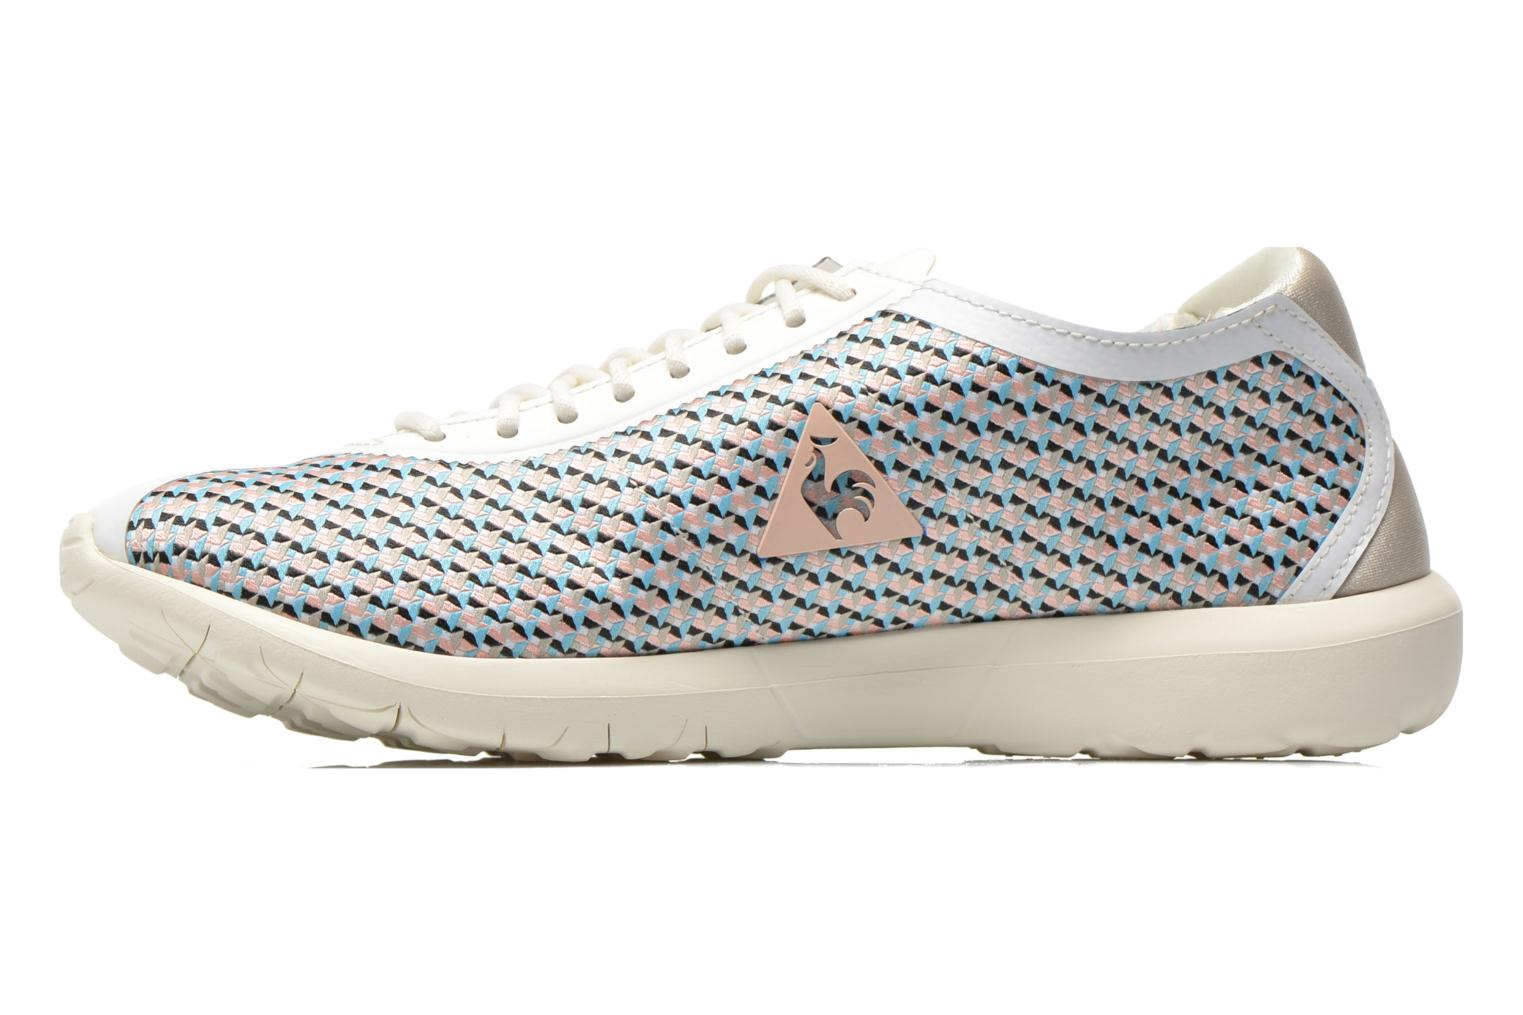 Baskets Le Coq Sportif Wendon Levity W Geo Jacquard Multicolore vue face